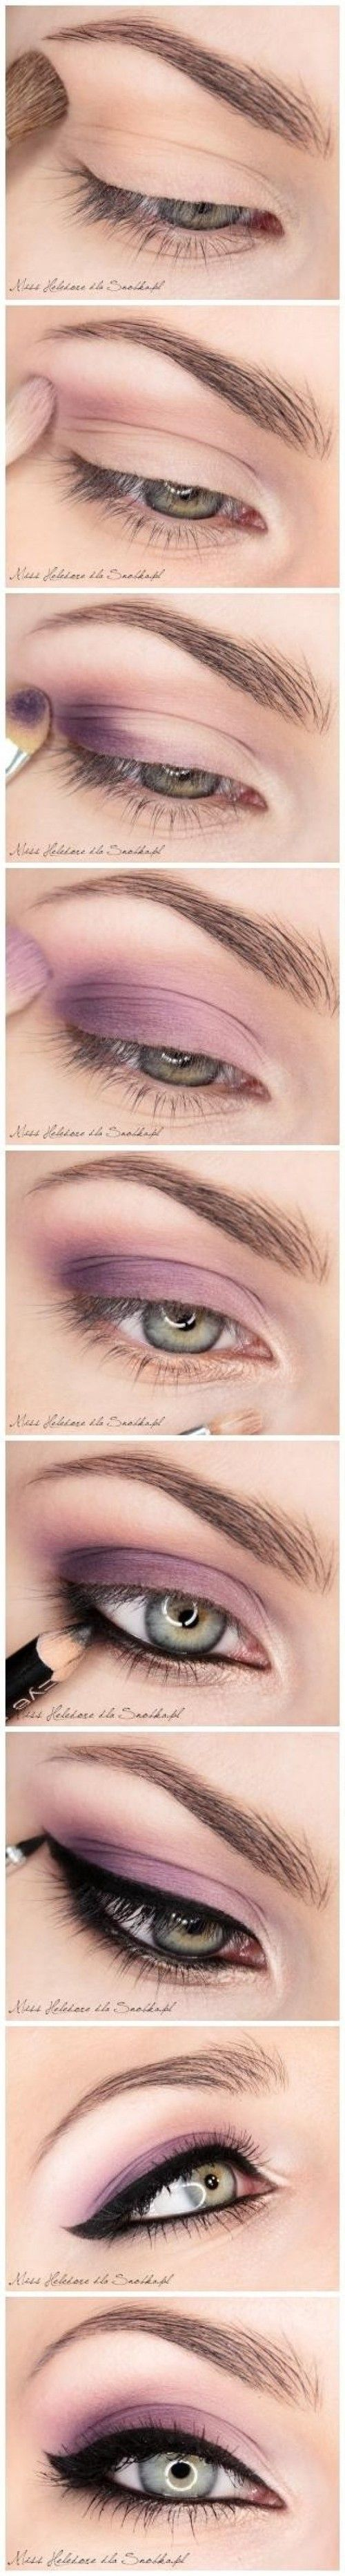 15 Attractive Smokey Eye Makeup Tutorials